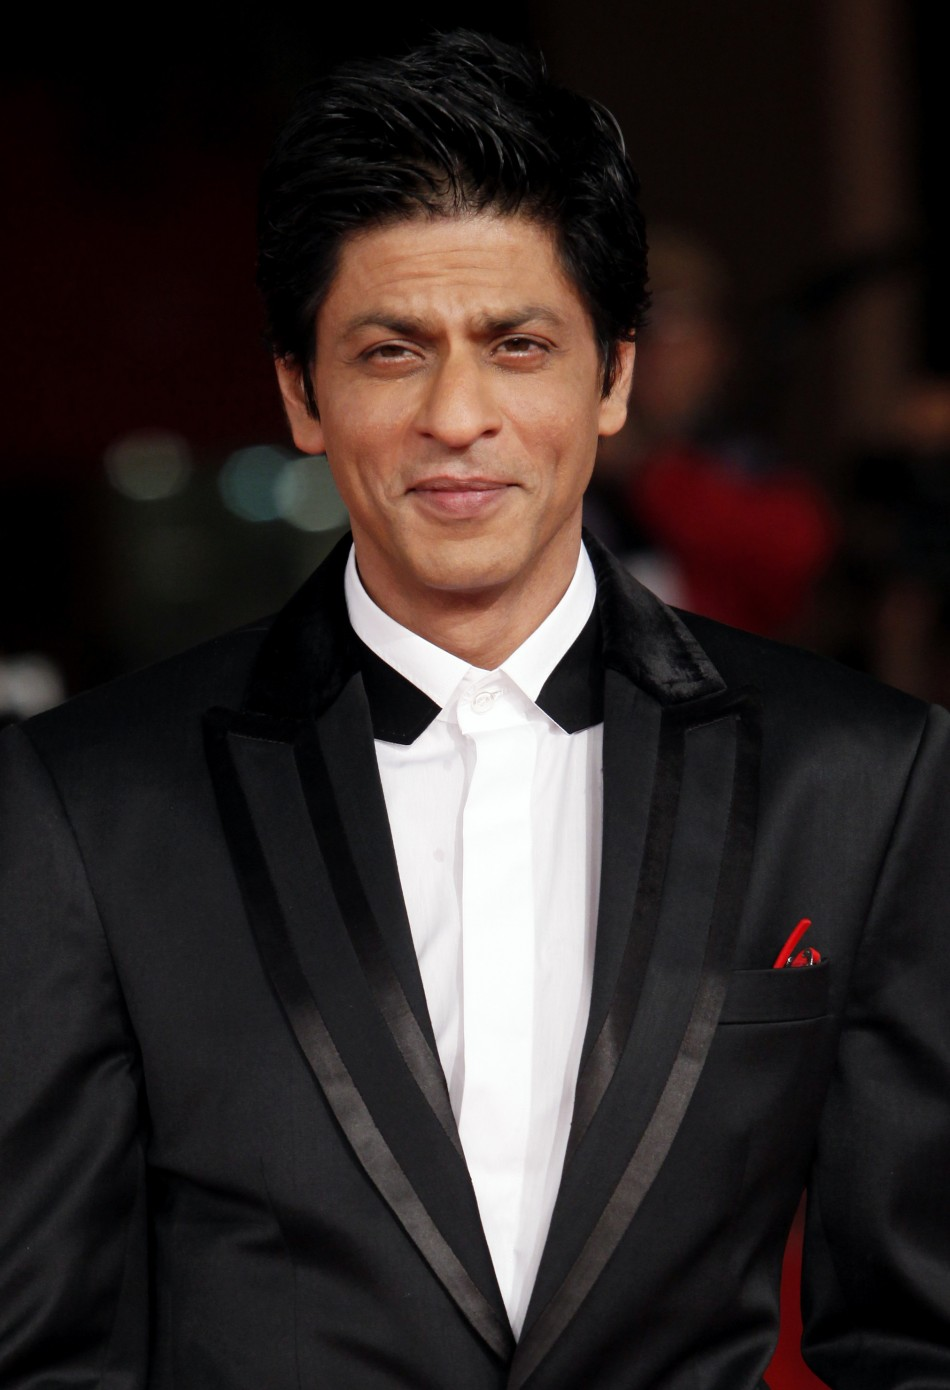 Shah Rukh Khan Instructed to Get Eight-Pack Abs For Farah ...